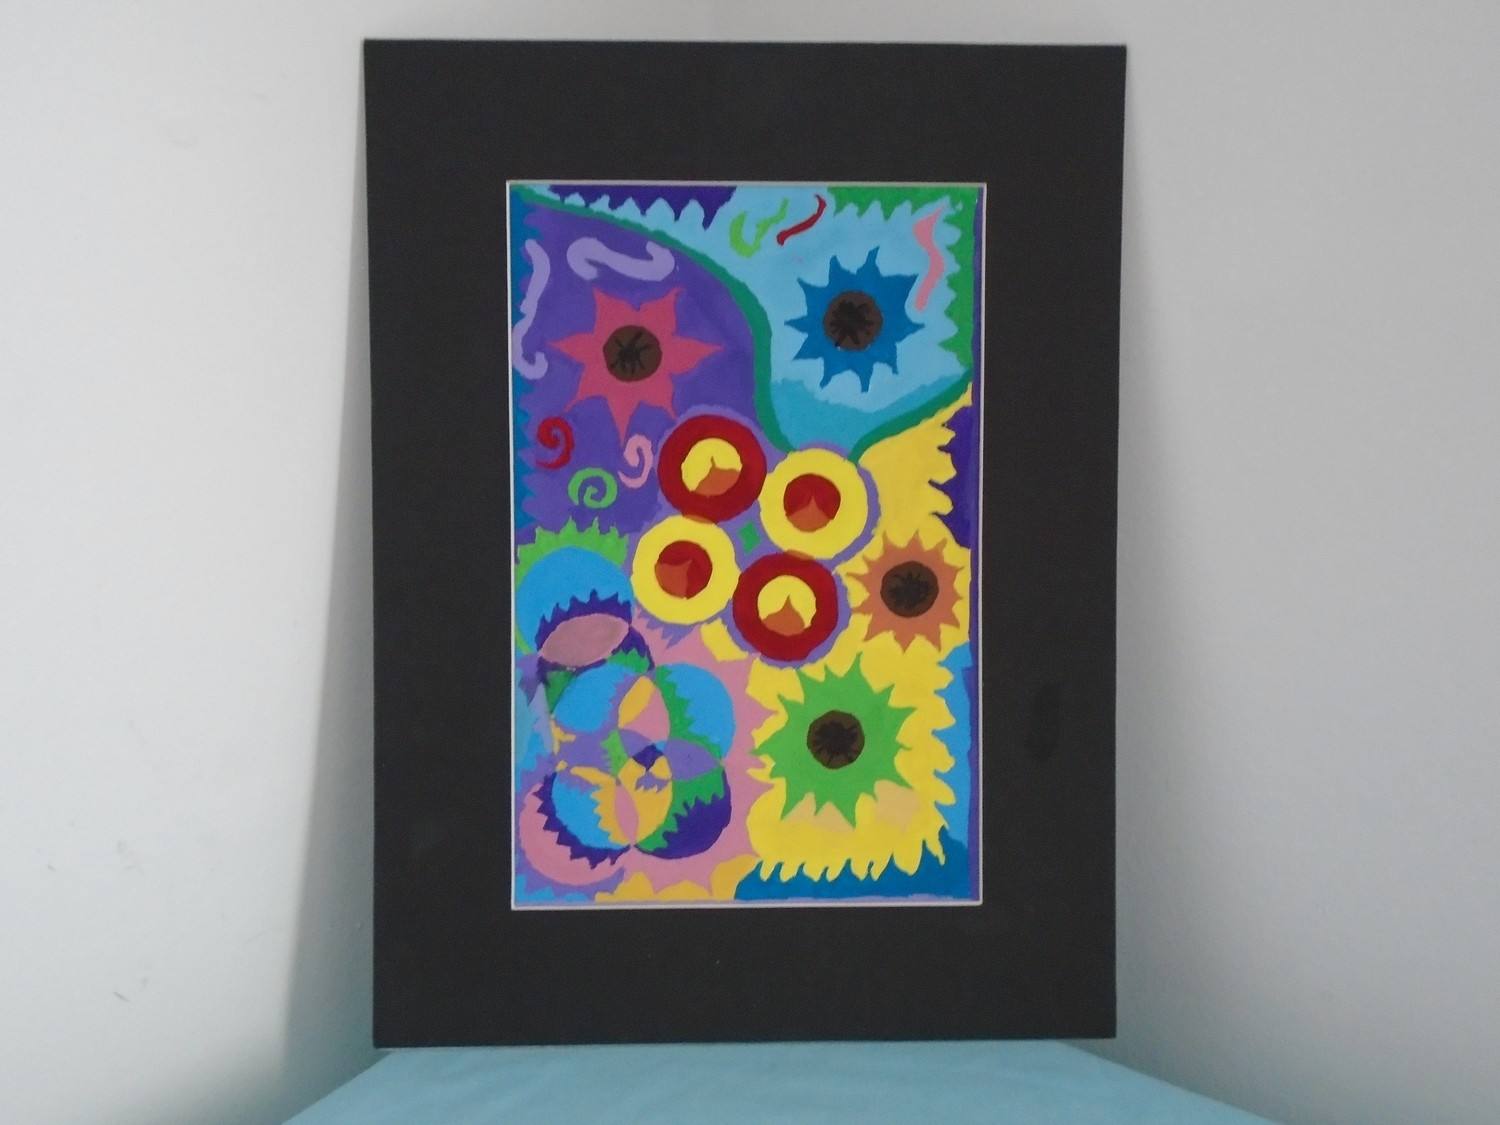 Flower Power Original Gouache Painting On Art Paper With Black Cardboard Frame 12x16 In